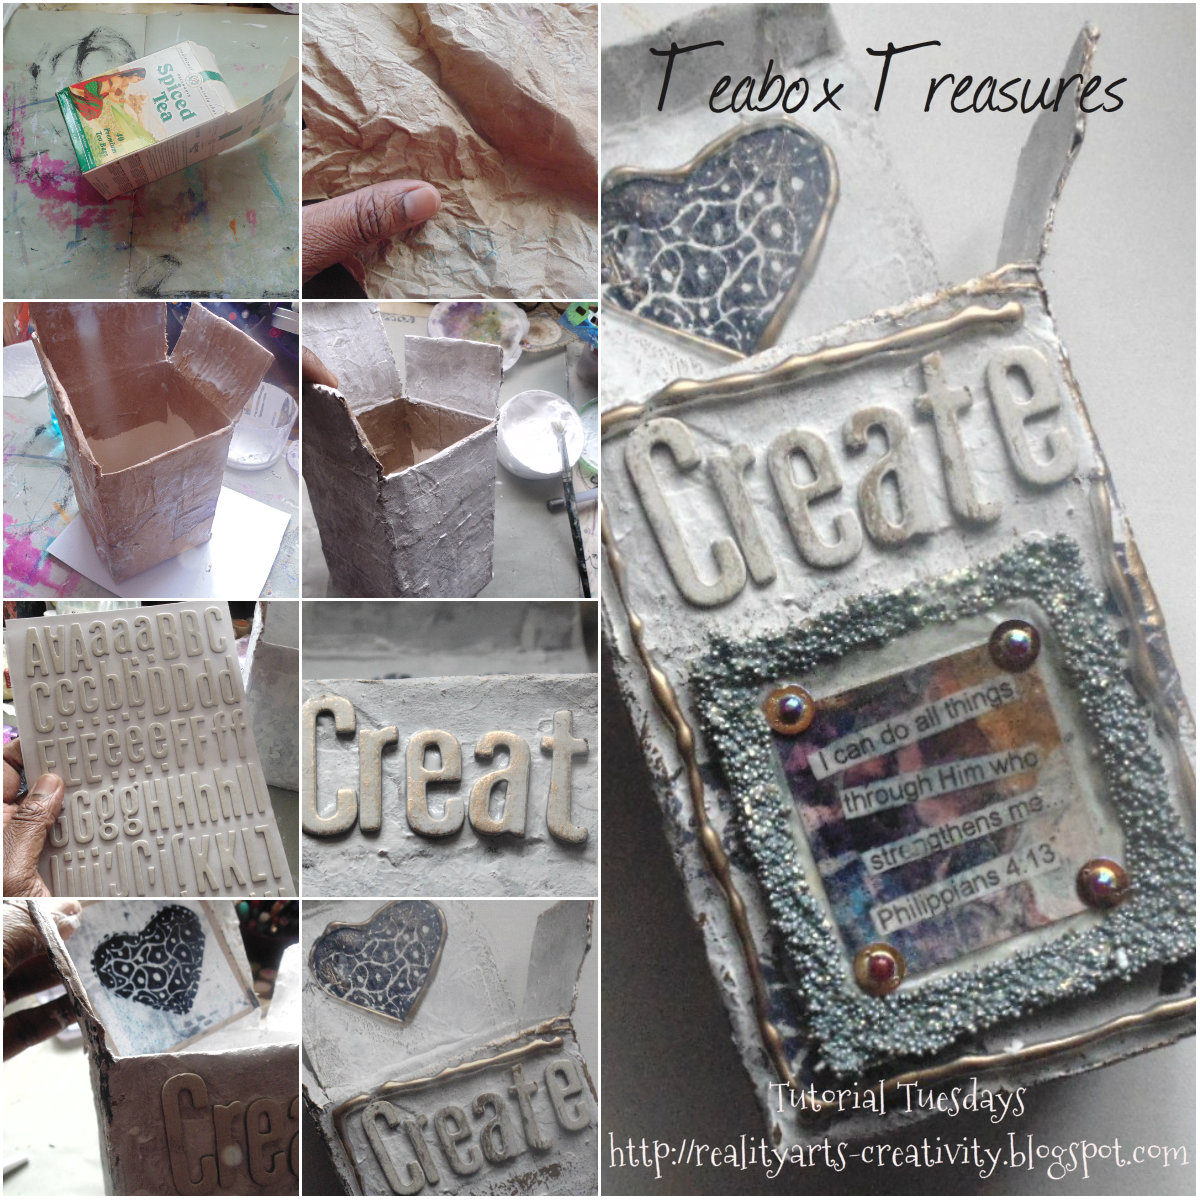 Realityarts inspiration art and creativity 31 creative for Creative waste material recycling